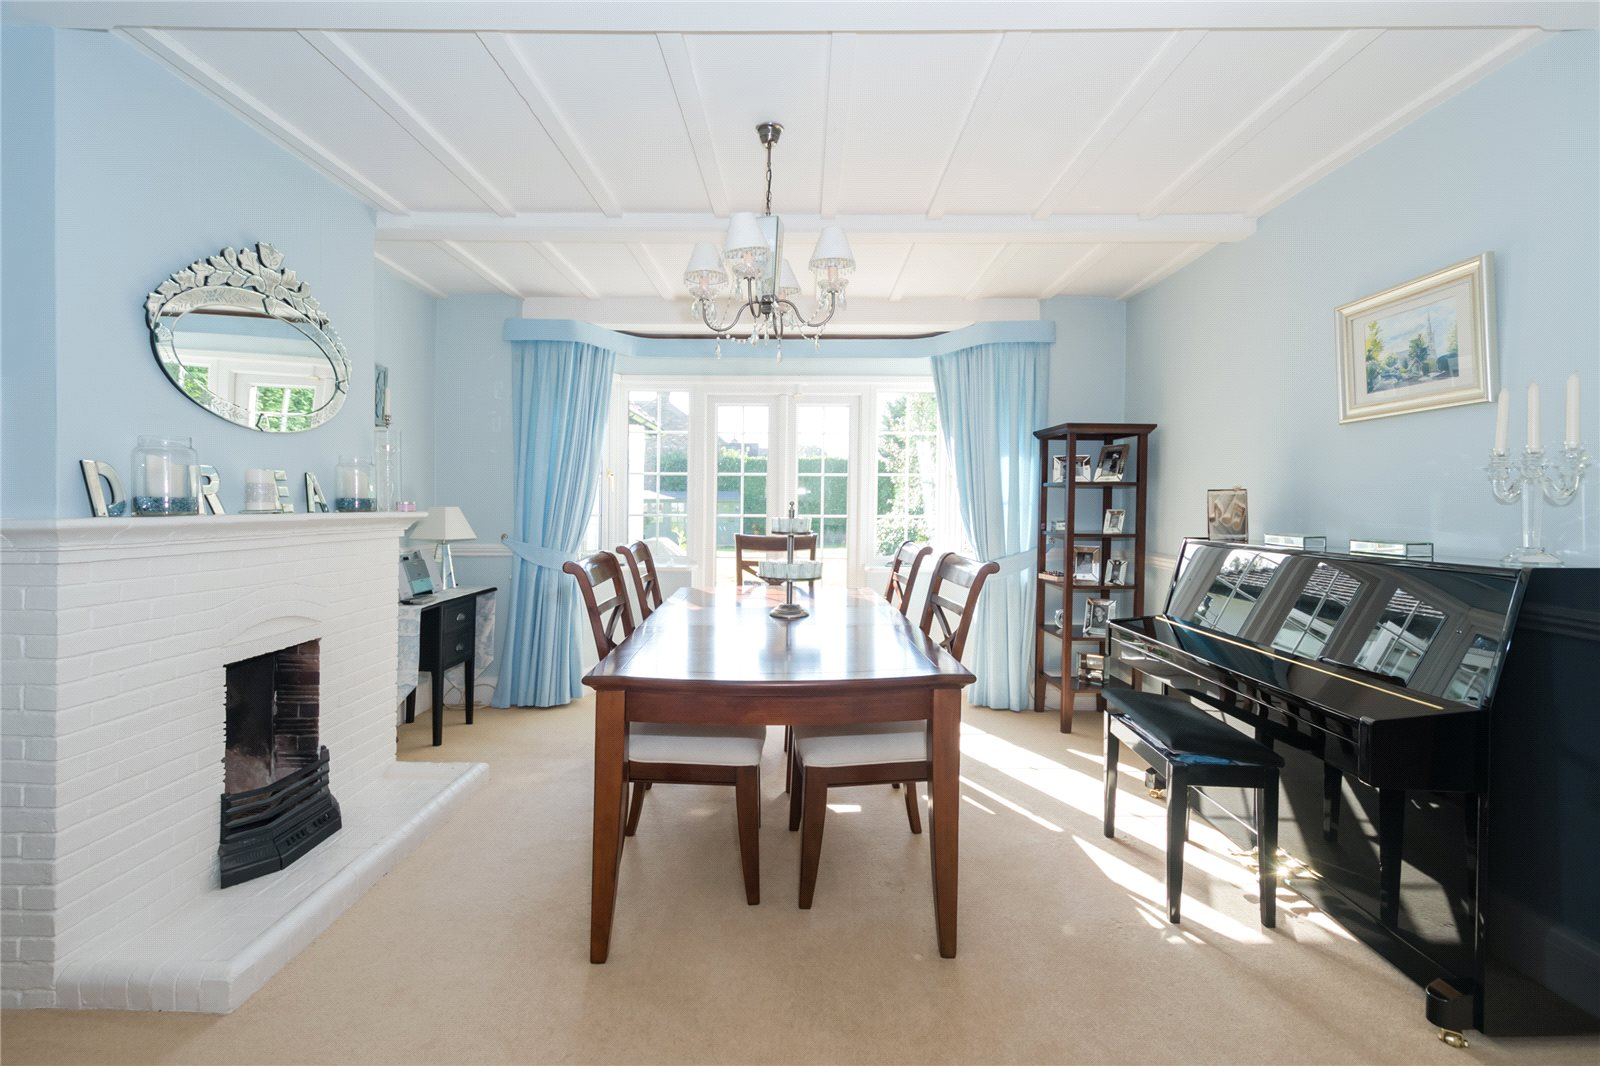 Additional photo for property listing at Priory Road, Chalfont St Peter, Buckinghamshire, SL9 Chalfont St Peter, Angleterre